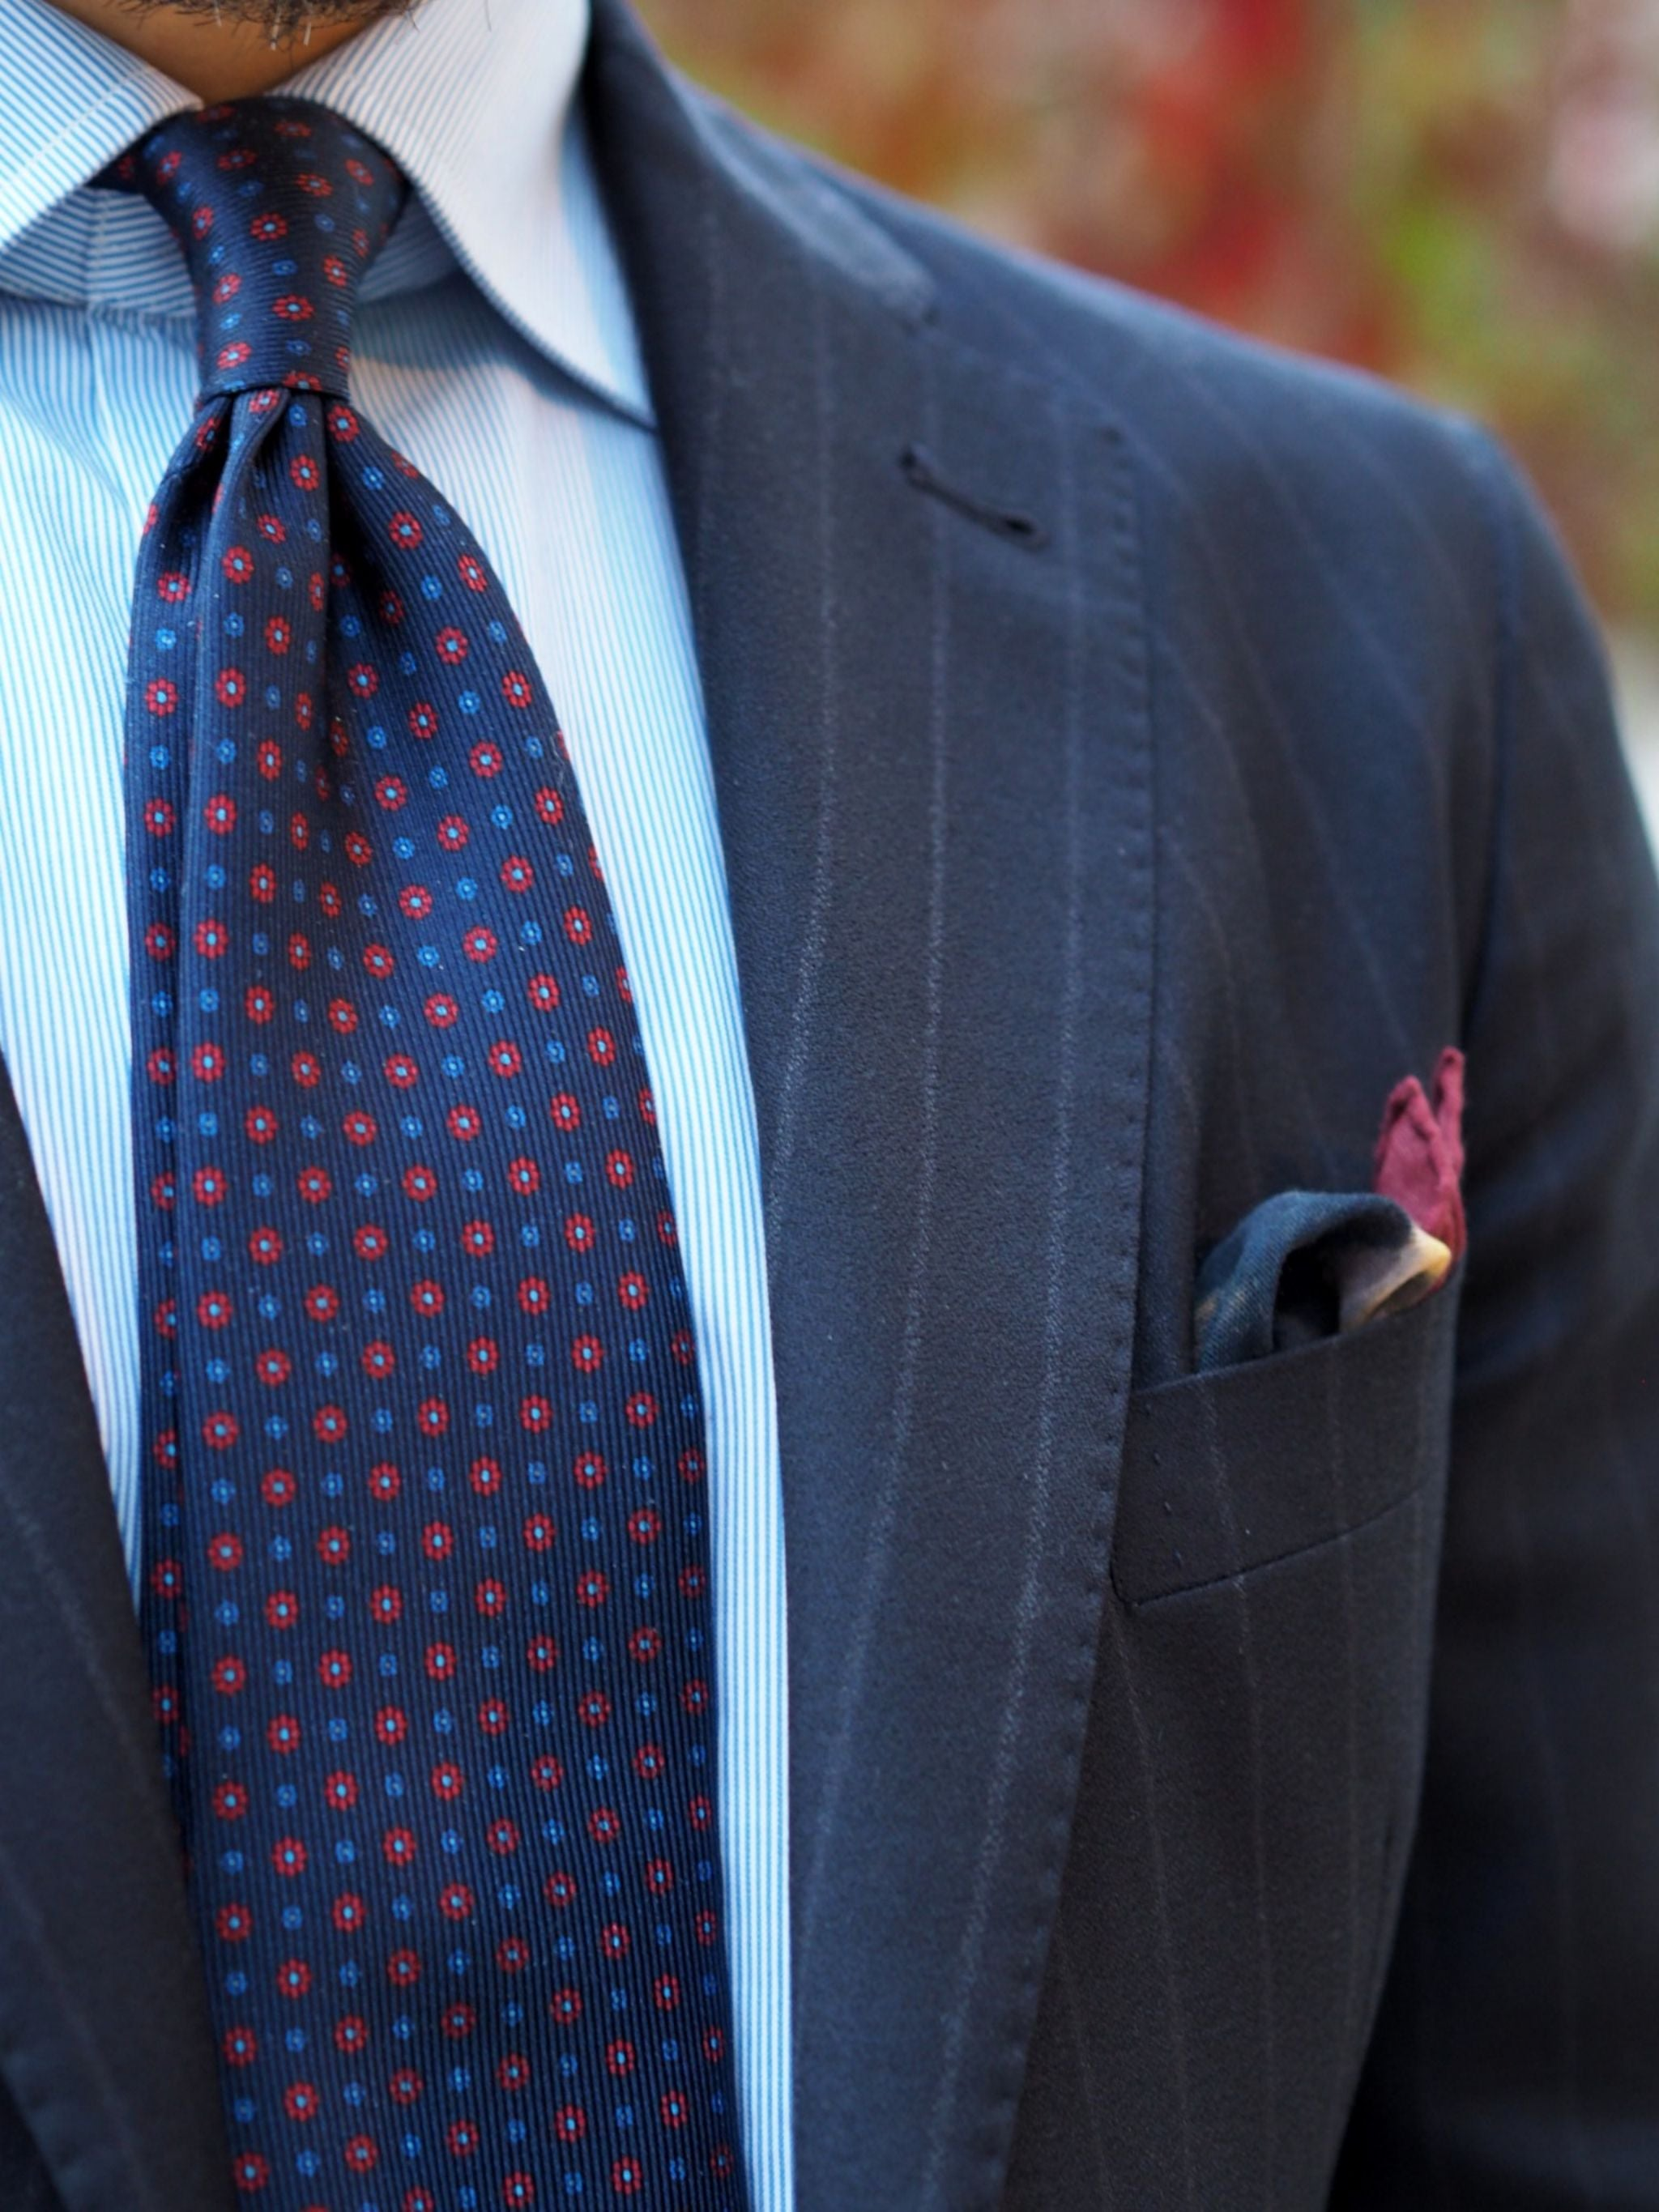 Autumnal business outfits - DLA floral pattern tie details